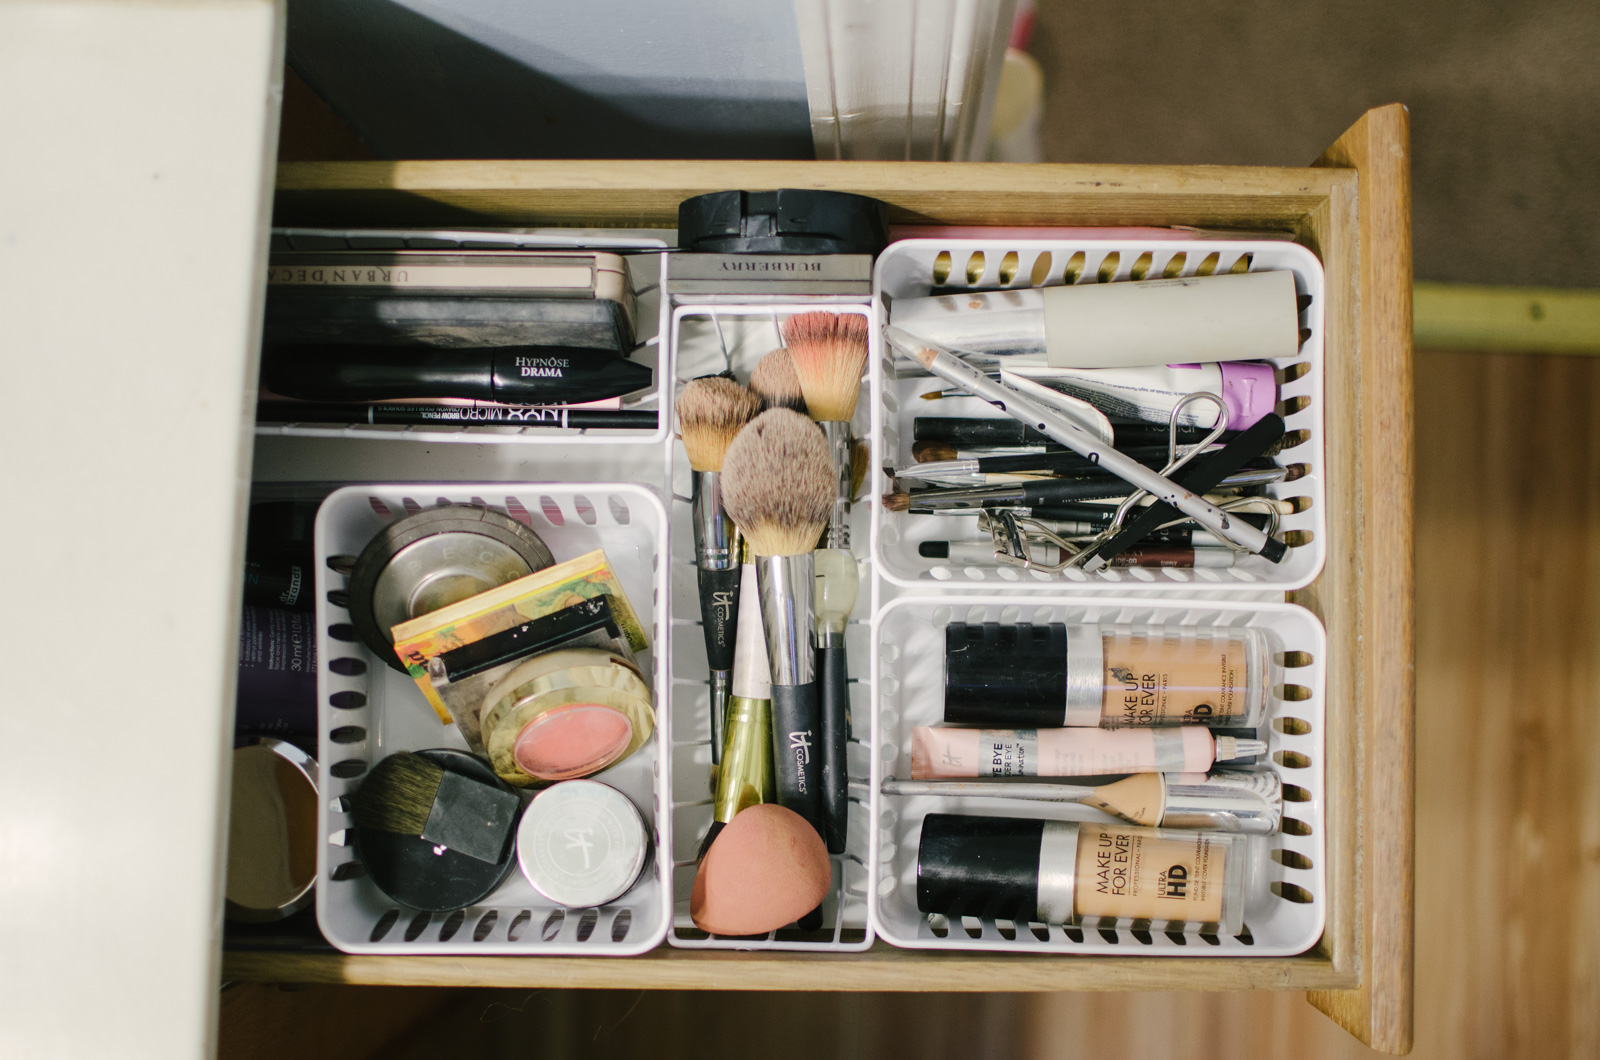 diy makeup drawer organization dollar store | Come see how to quickly and easily organize your makeup drawer for less than $5! bylaurenm.com